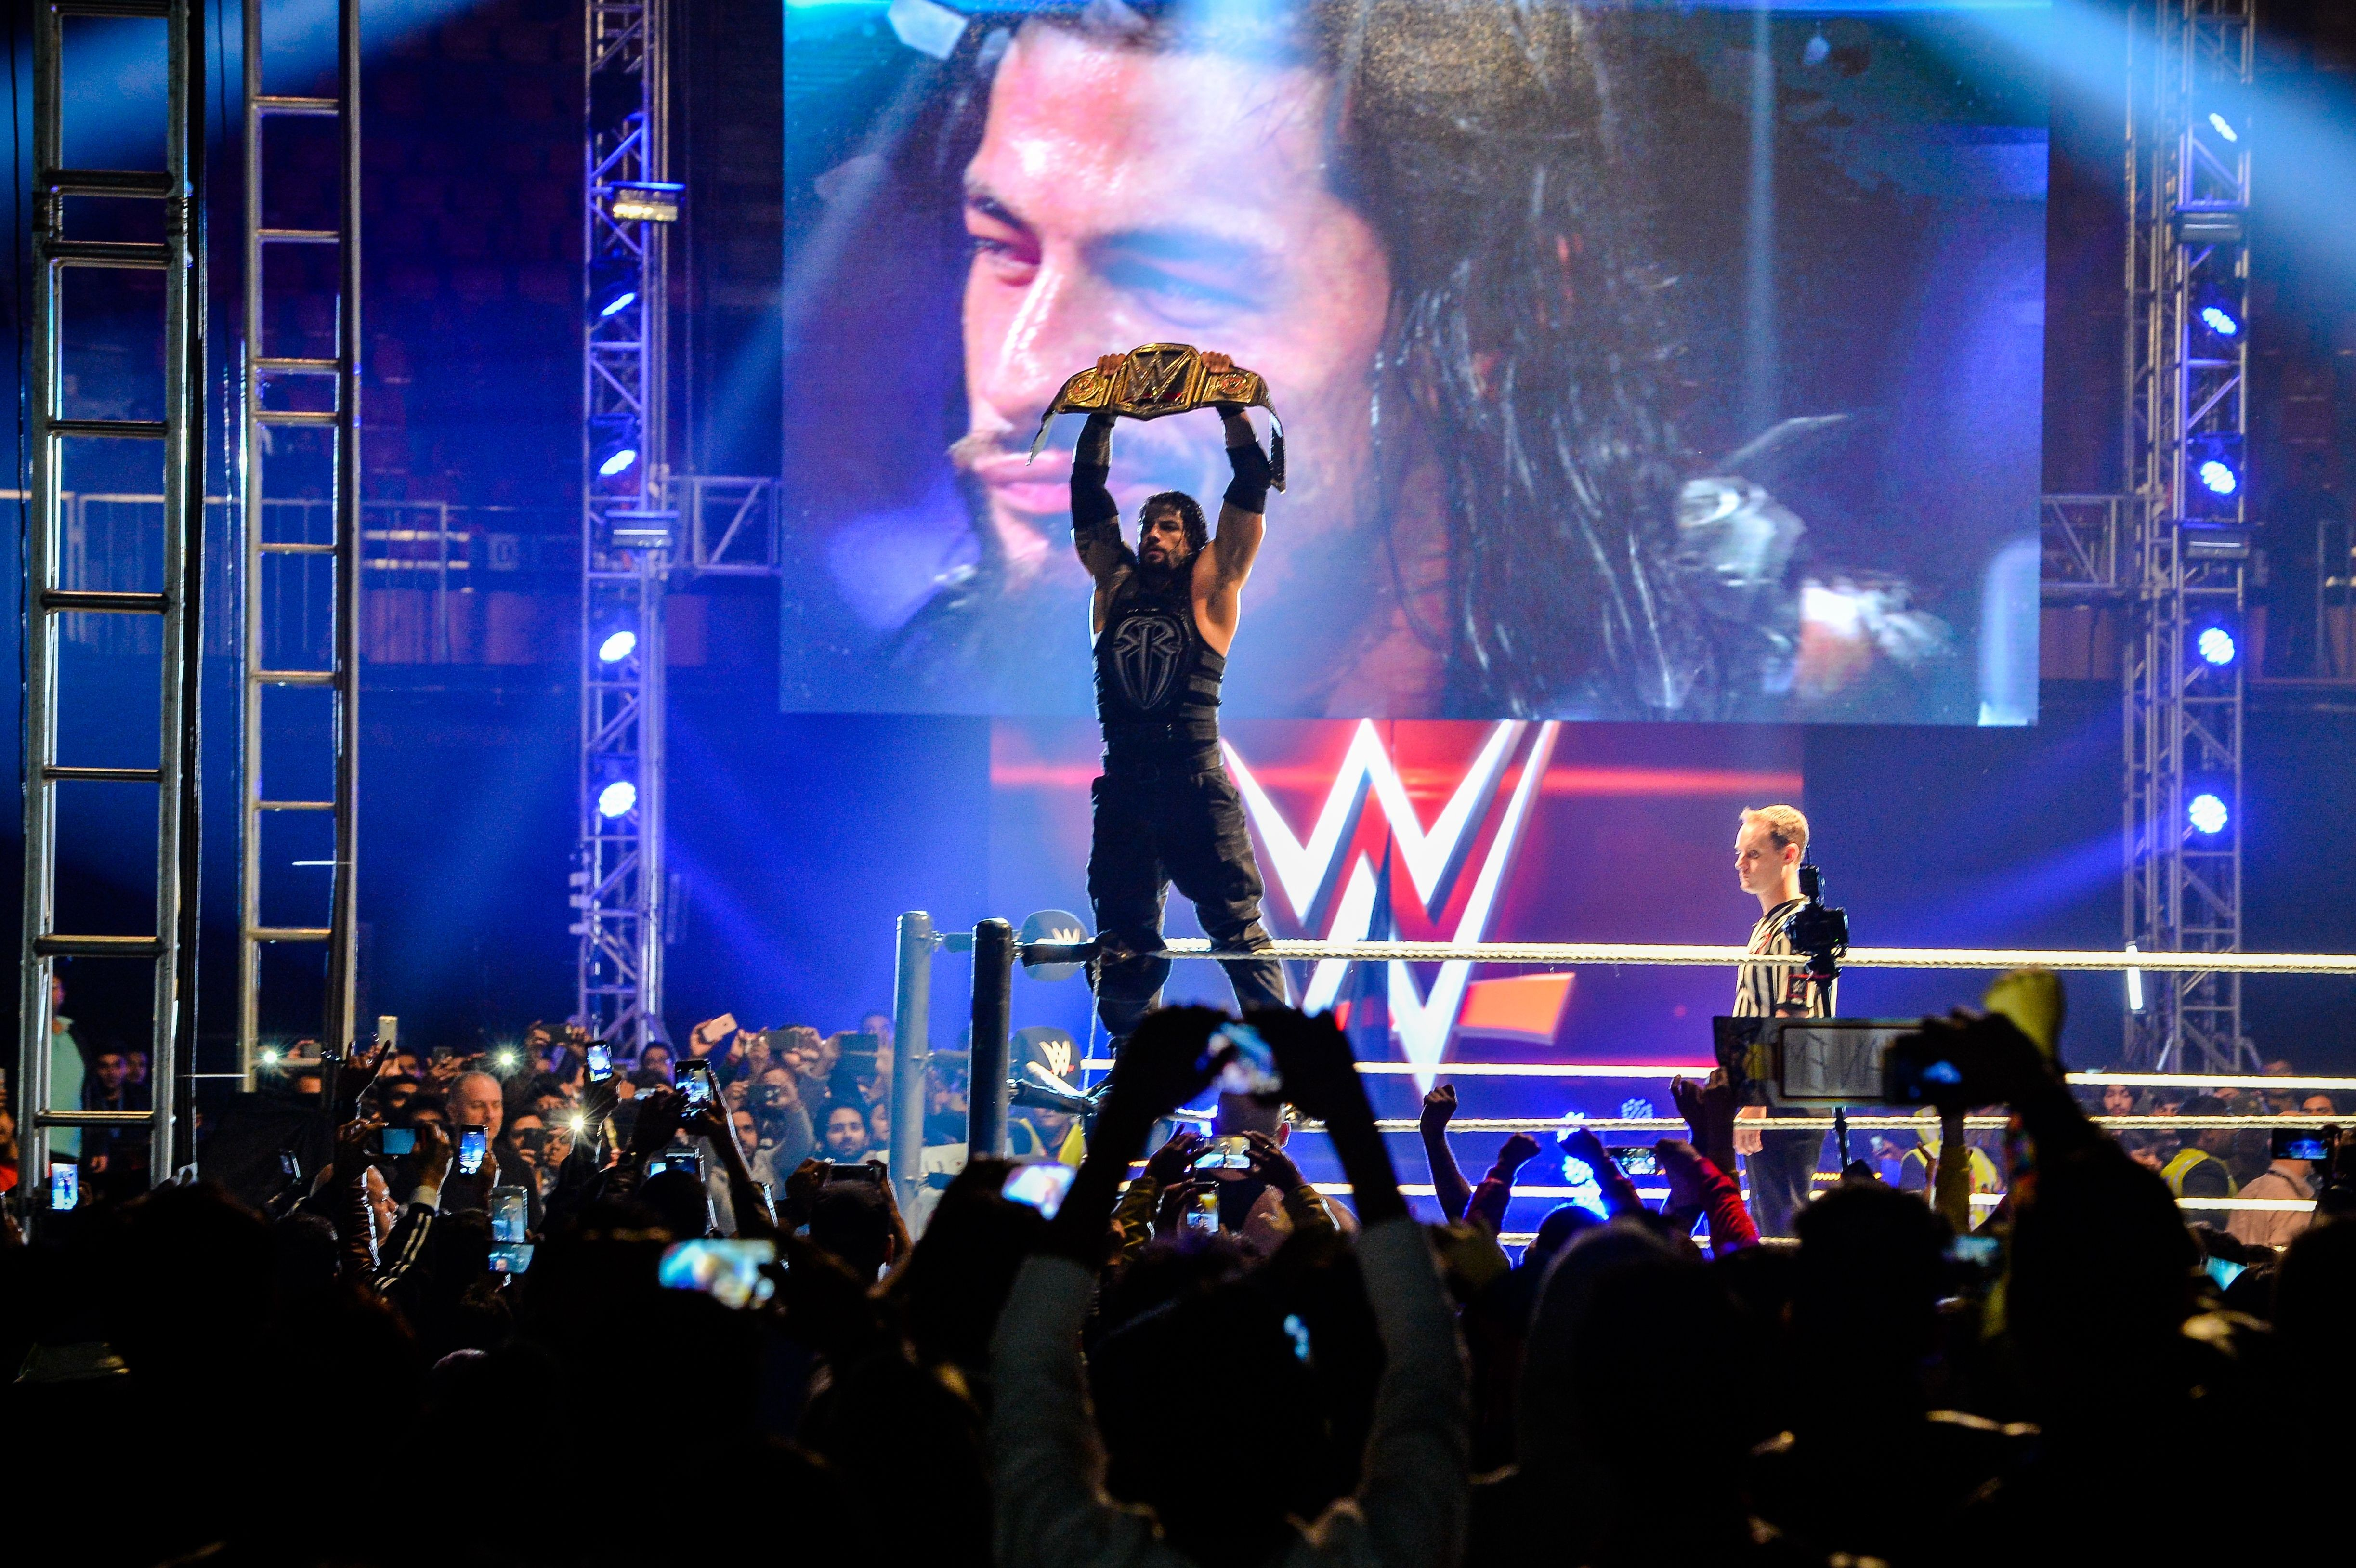 WWE Live India (Getty, MH)